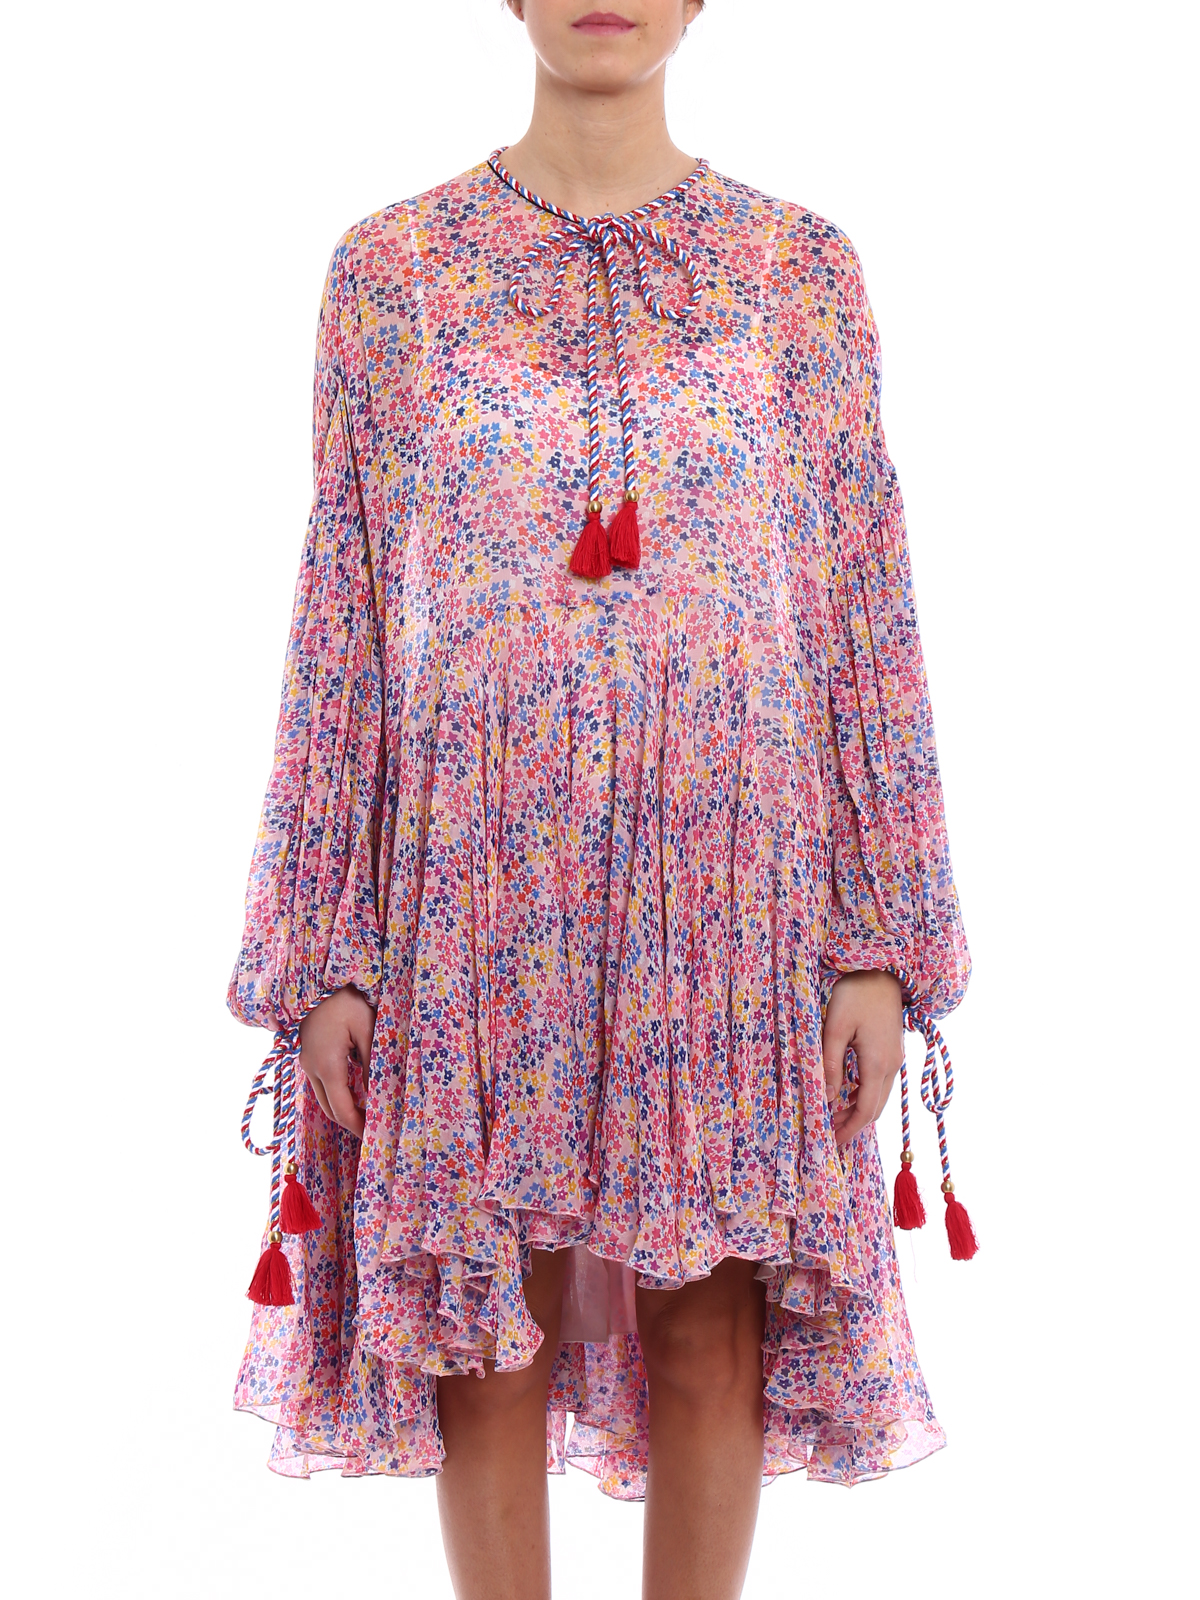 Latest Collections  loose fit shirt dress - Pink & Purple Philosophy di Lorenzo Serafini 2018 Sale Online Authentic For Sale Discount Marketable Outlet Lowest Price r8CAfKn